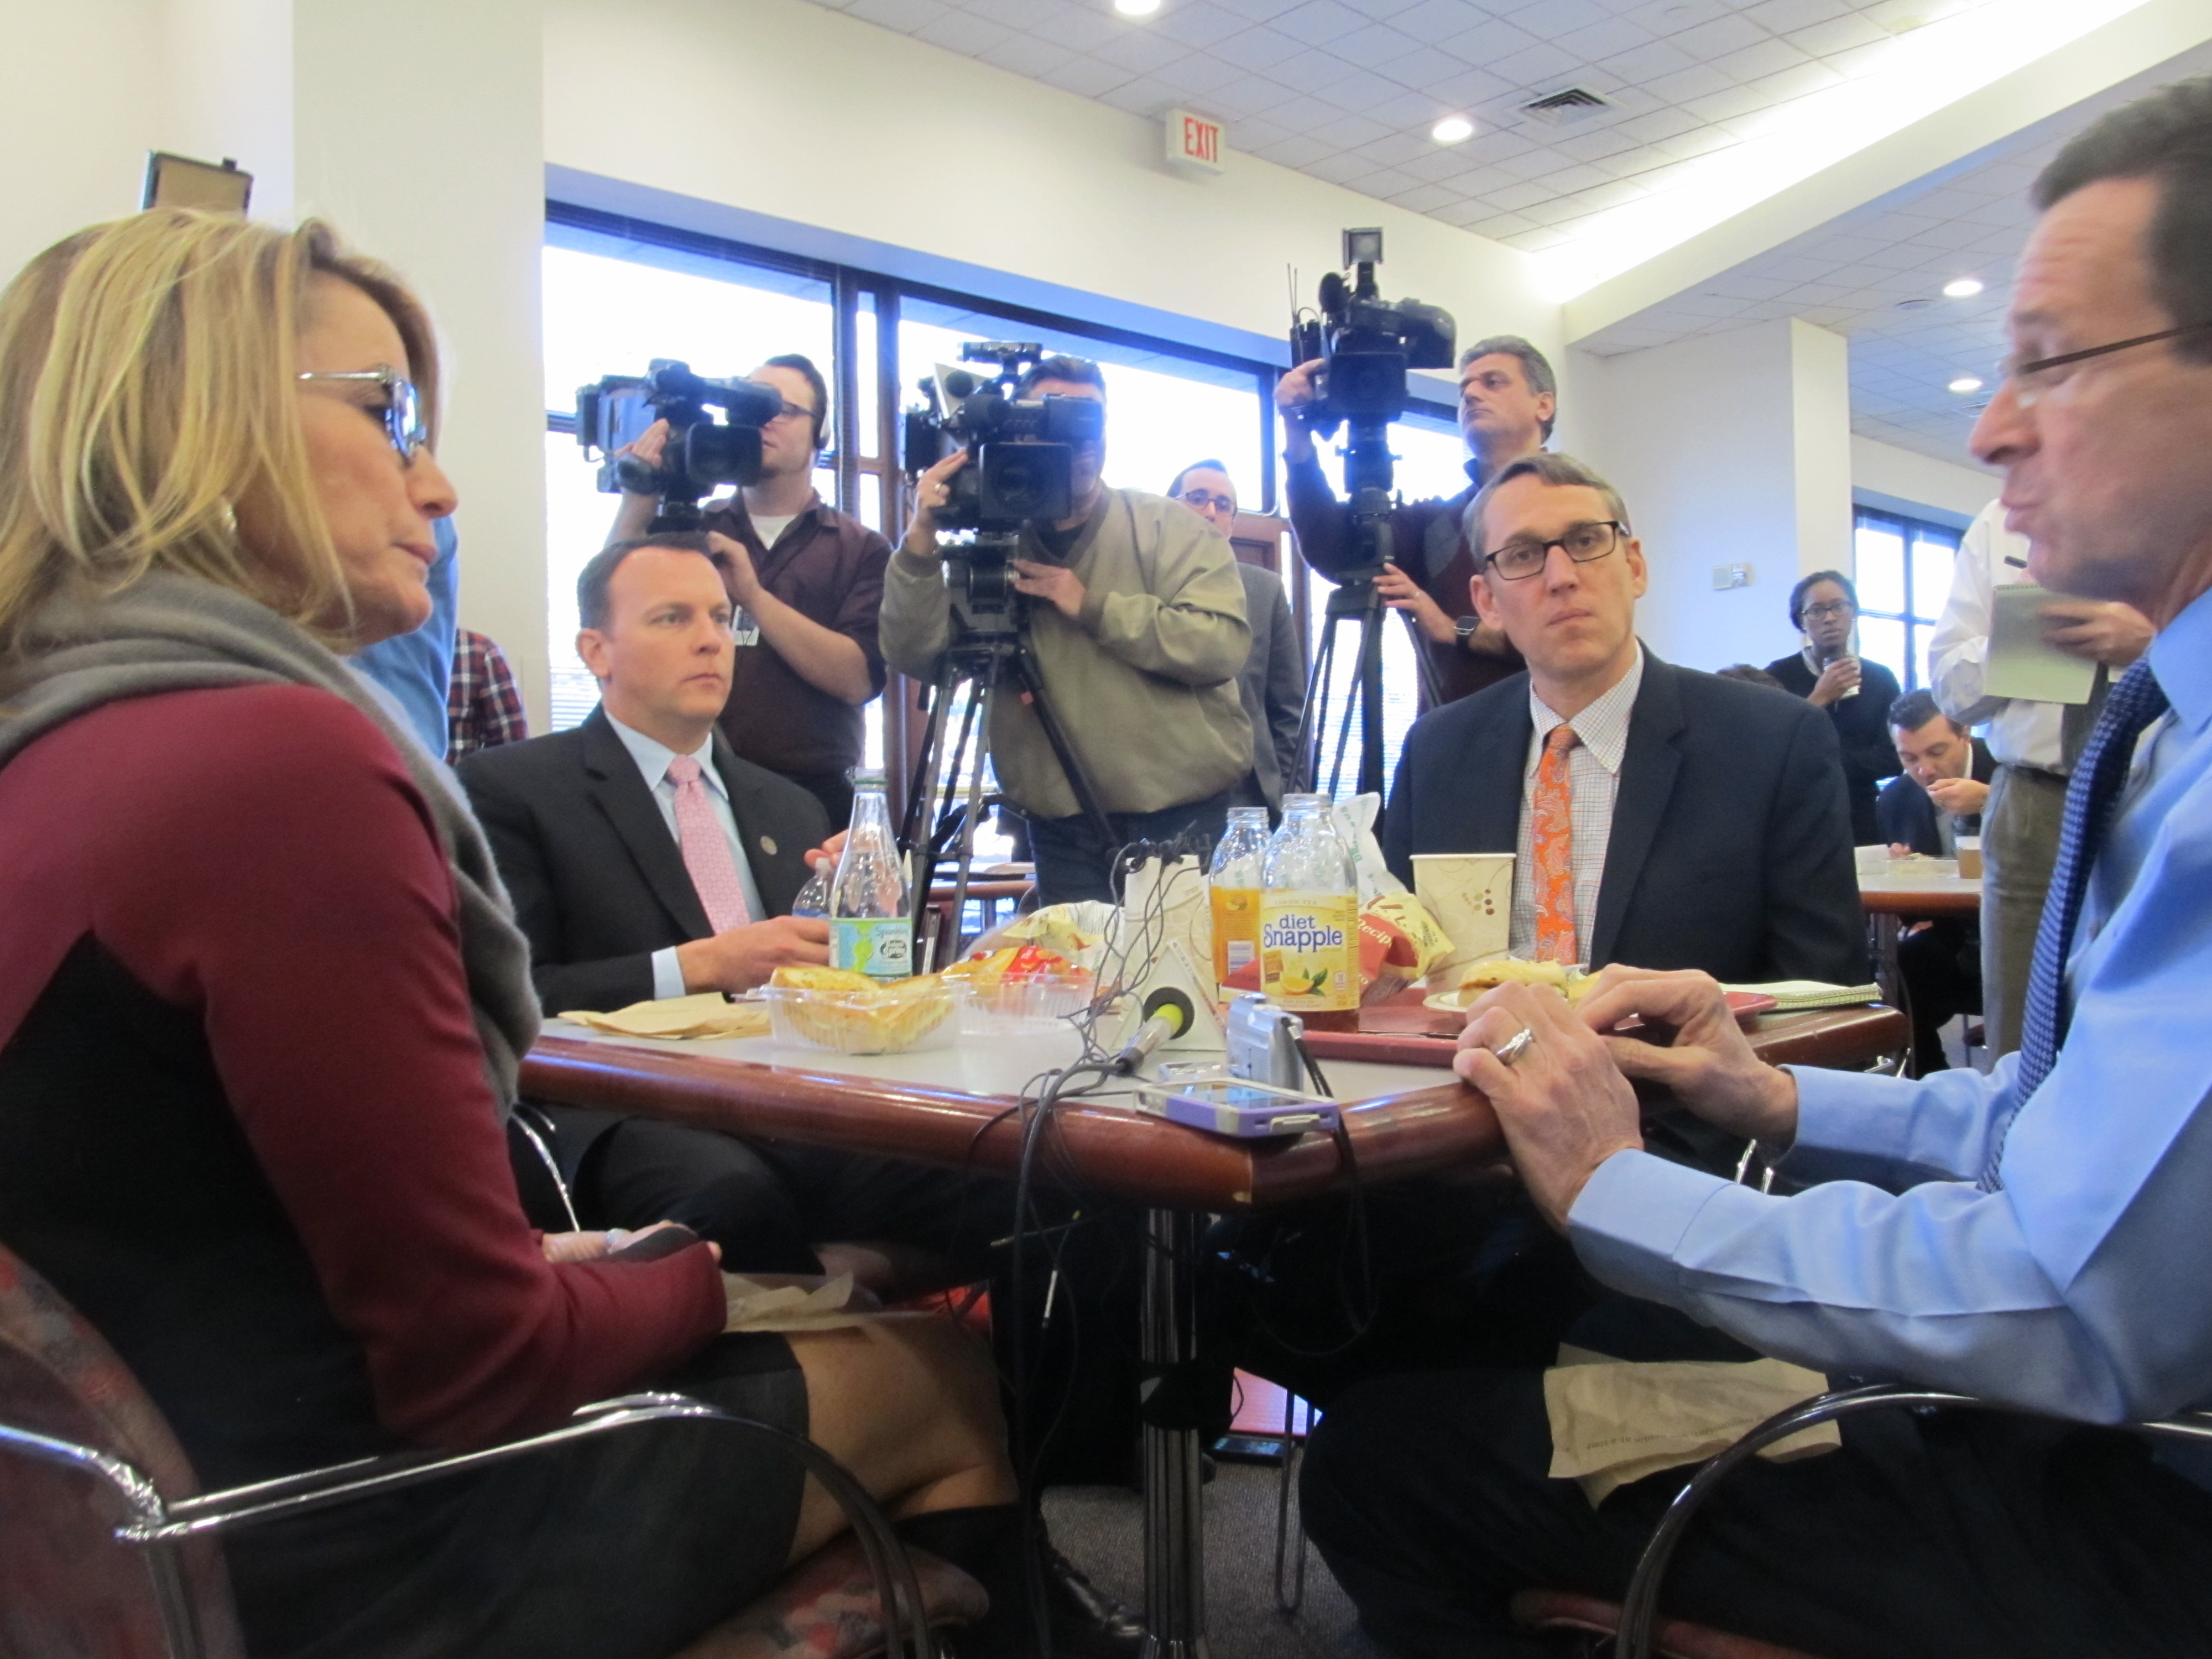 Malloy, GOP leader and press do photo op lunch